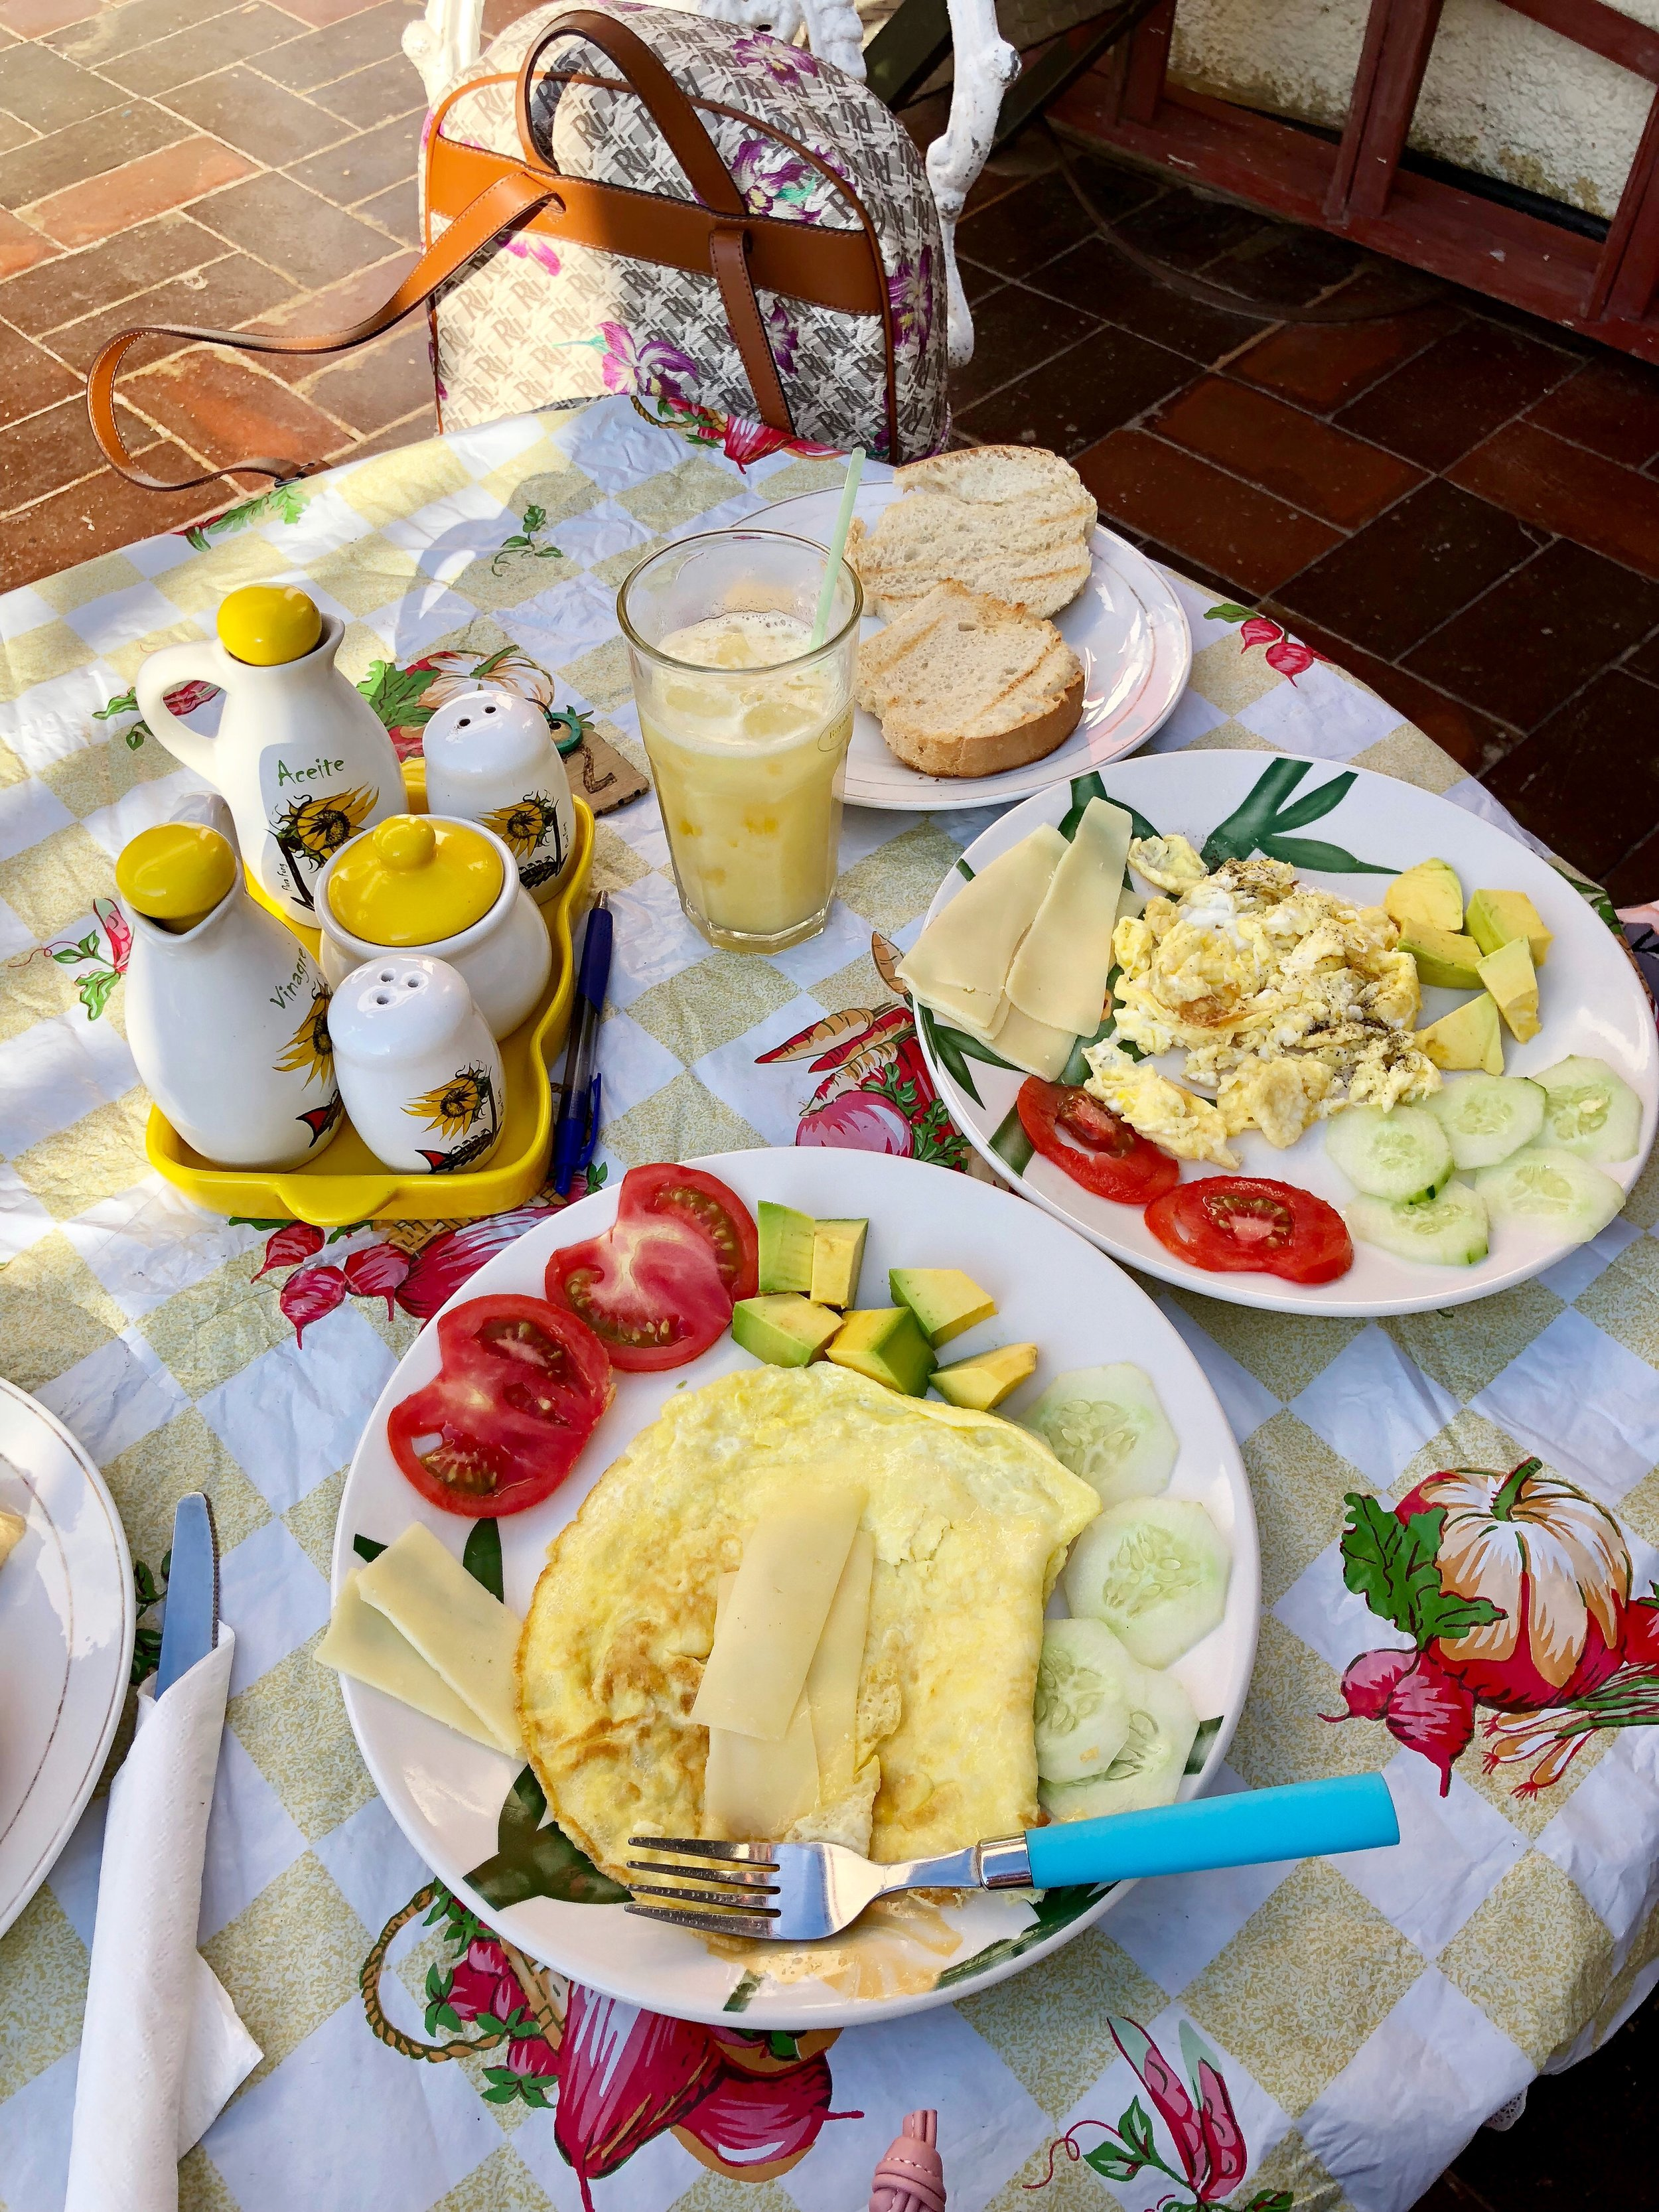 Breakfast with fresh juice, bread and coffee!